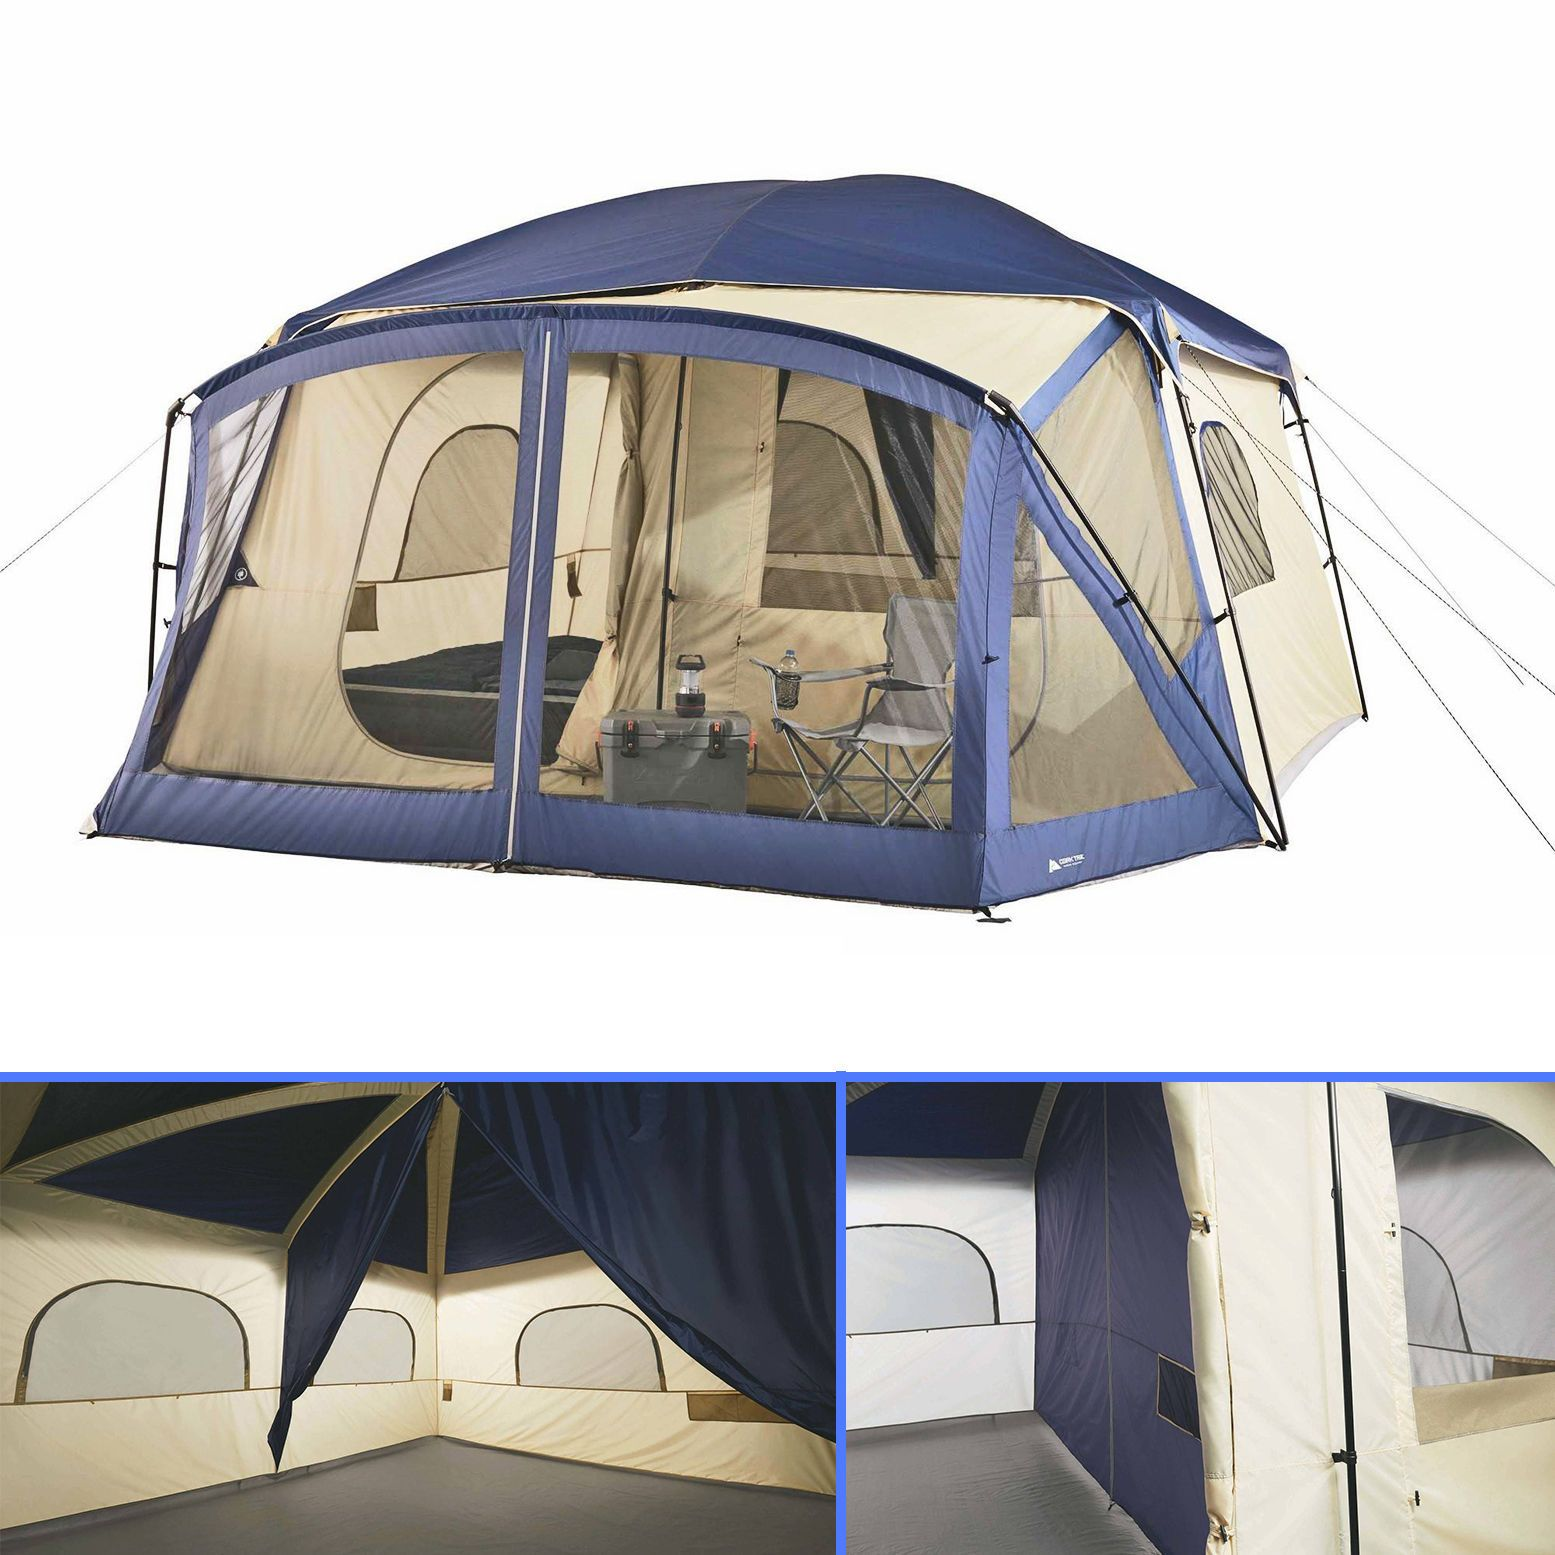 Outdoor Canopy Tent Screen House 12-Person Cabin Porch Sleeper C&ing Bed Hiker  sc 1 st  Pinterest & Outdoor Canopy Tent Screen House 12-Person Cabin Porch Sleeper ...